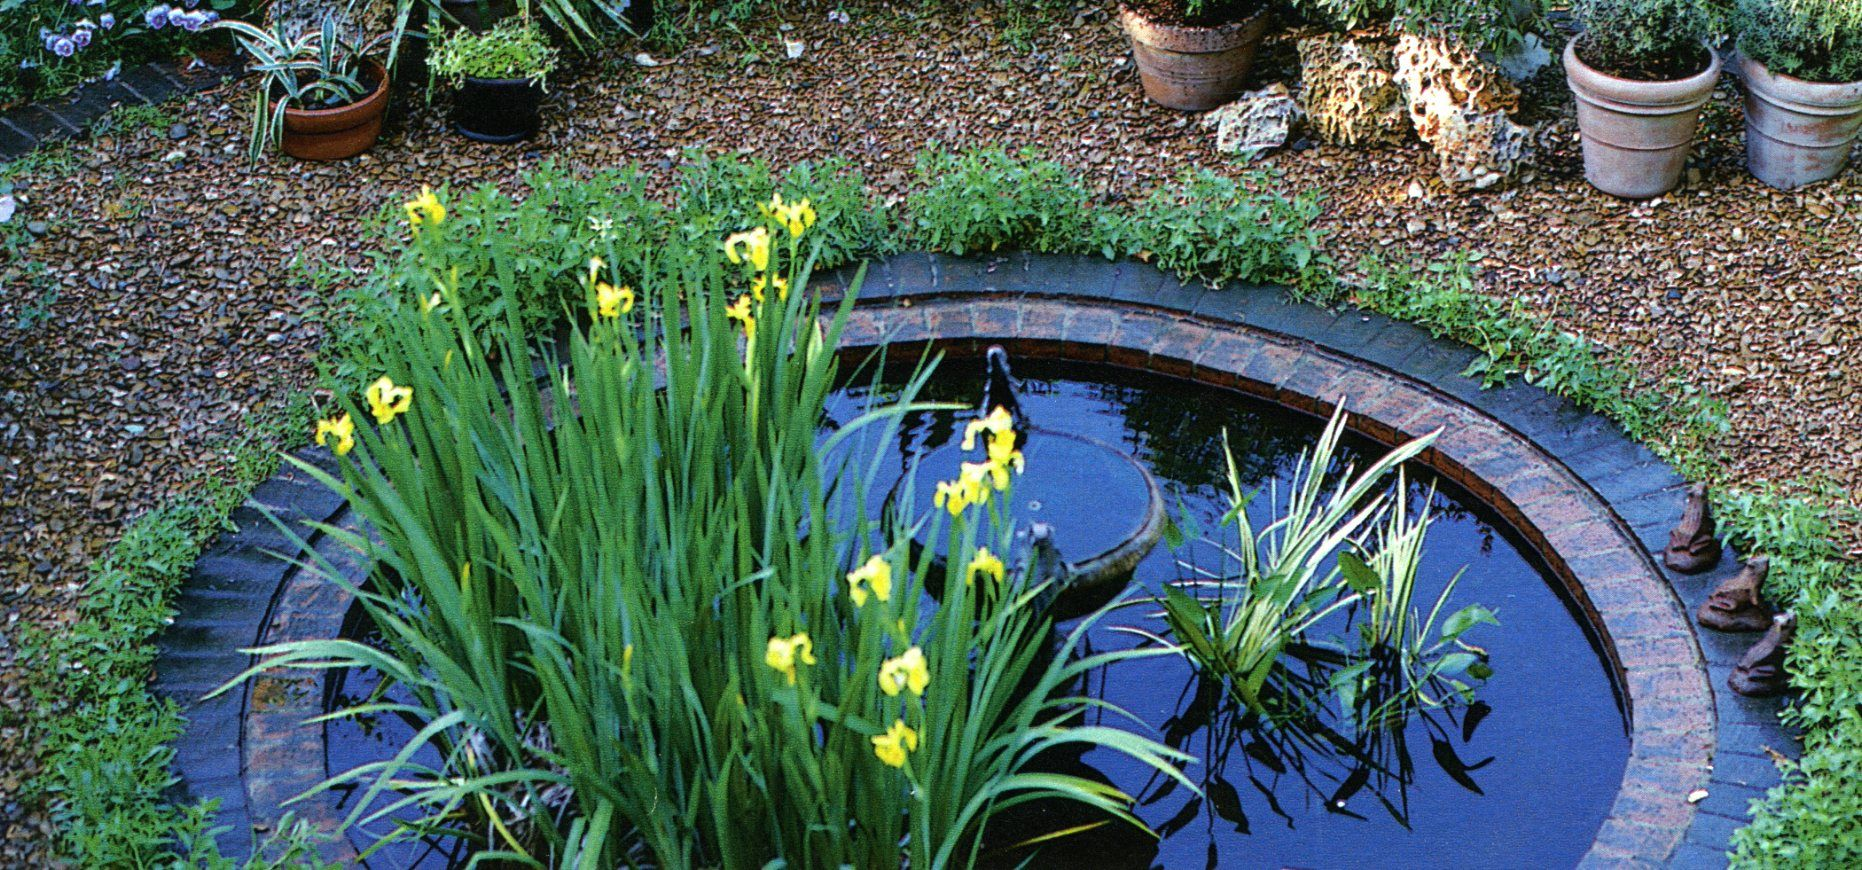 Small backyard pond backyard ideas pinterest for Pond ideas for small yards